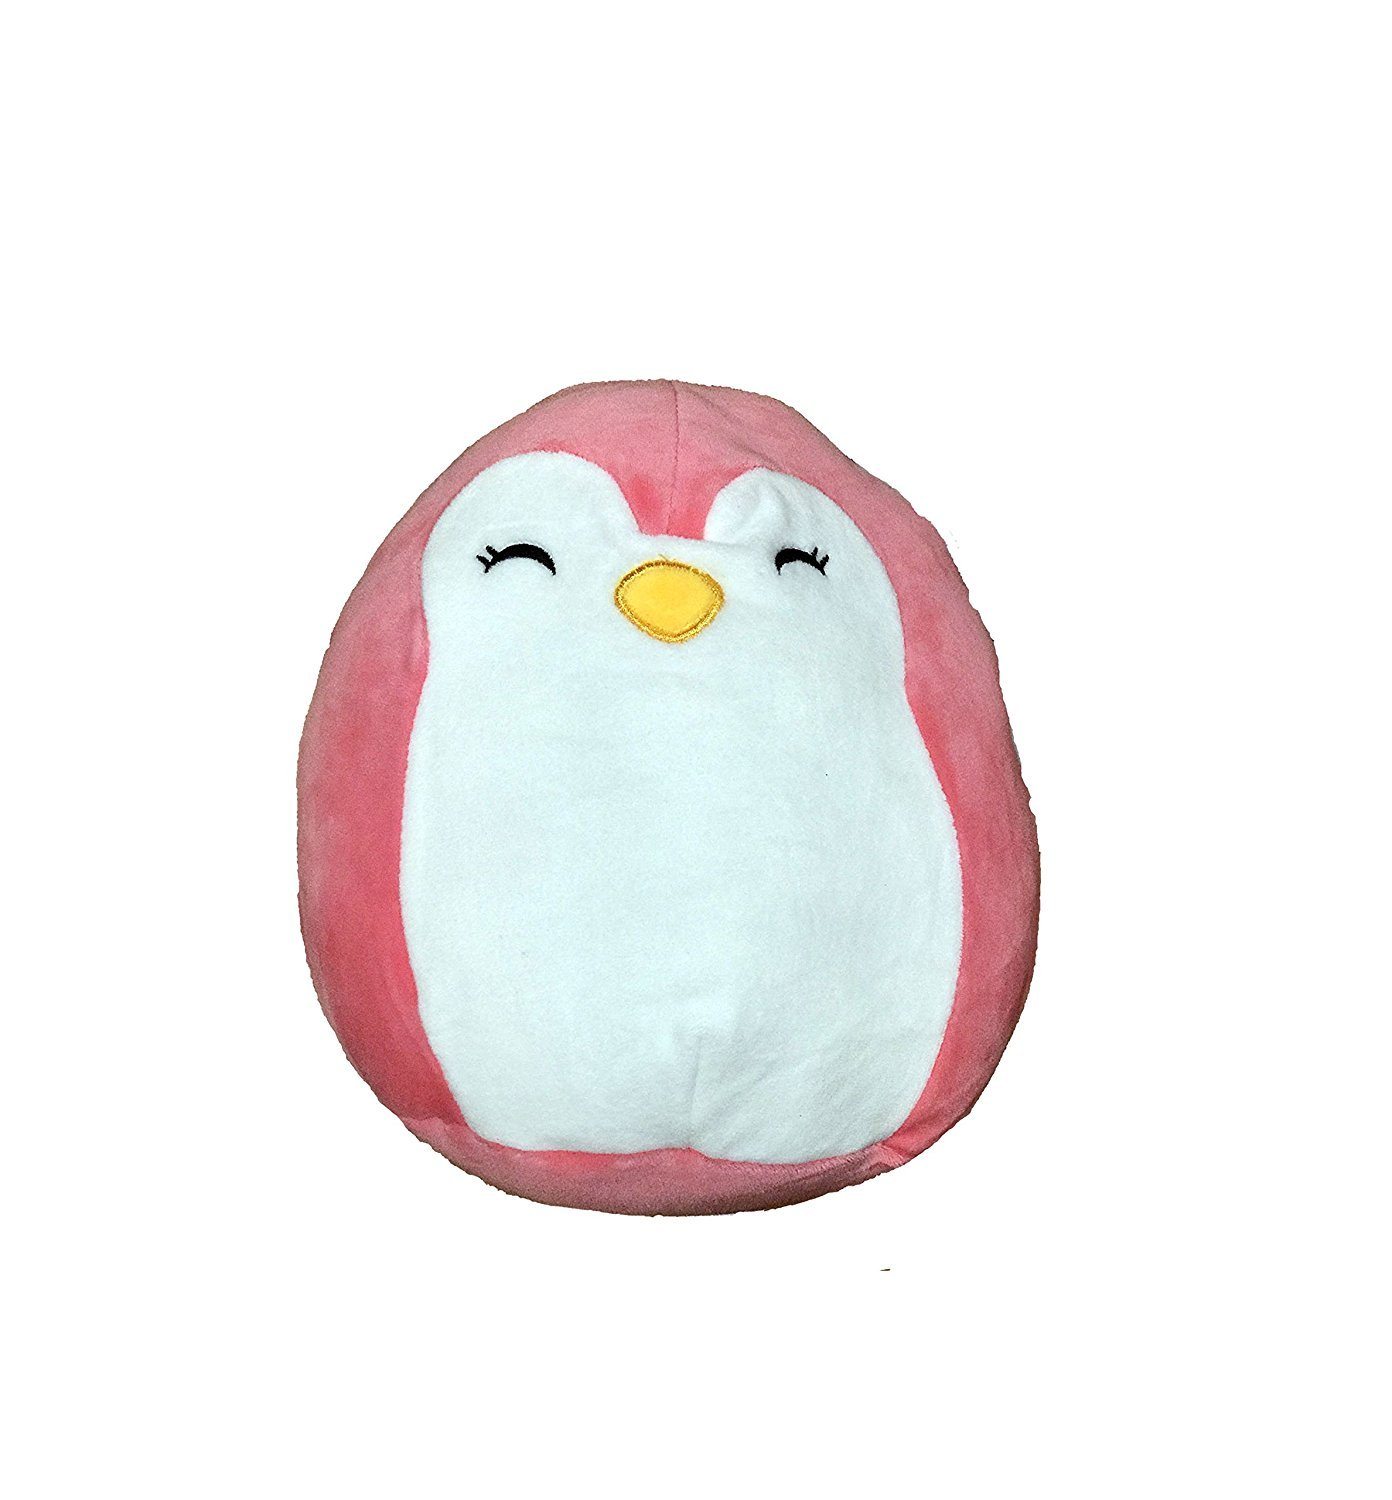 Piper The Pink Penguin Kellytoy Squishmallow 16 Super Soft Plush Toy Pillow Pet Pal Buddy